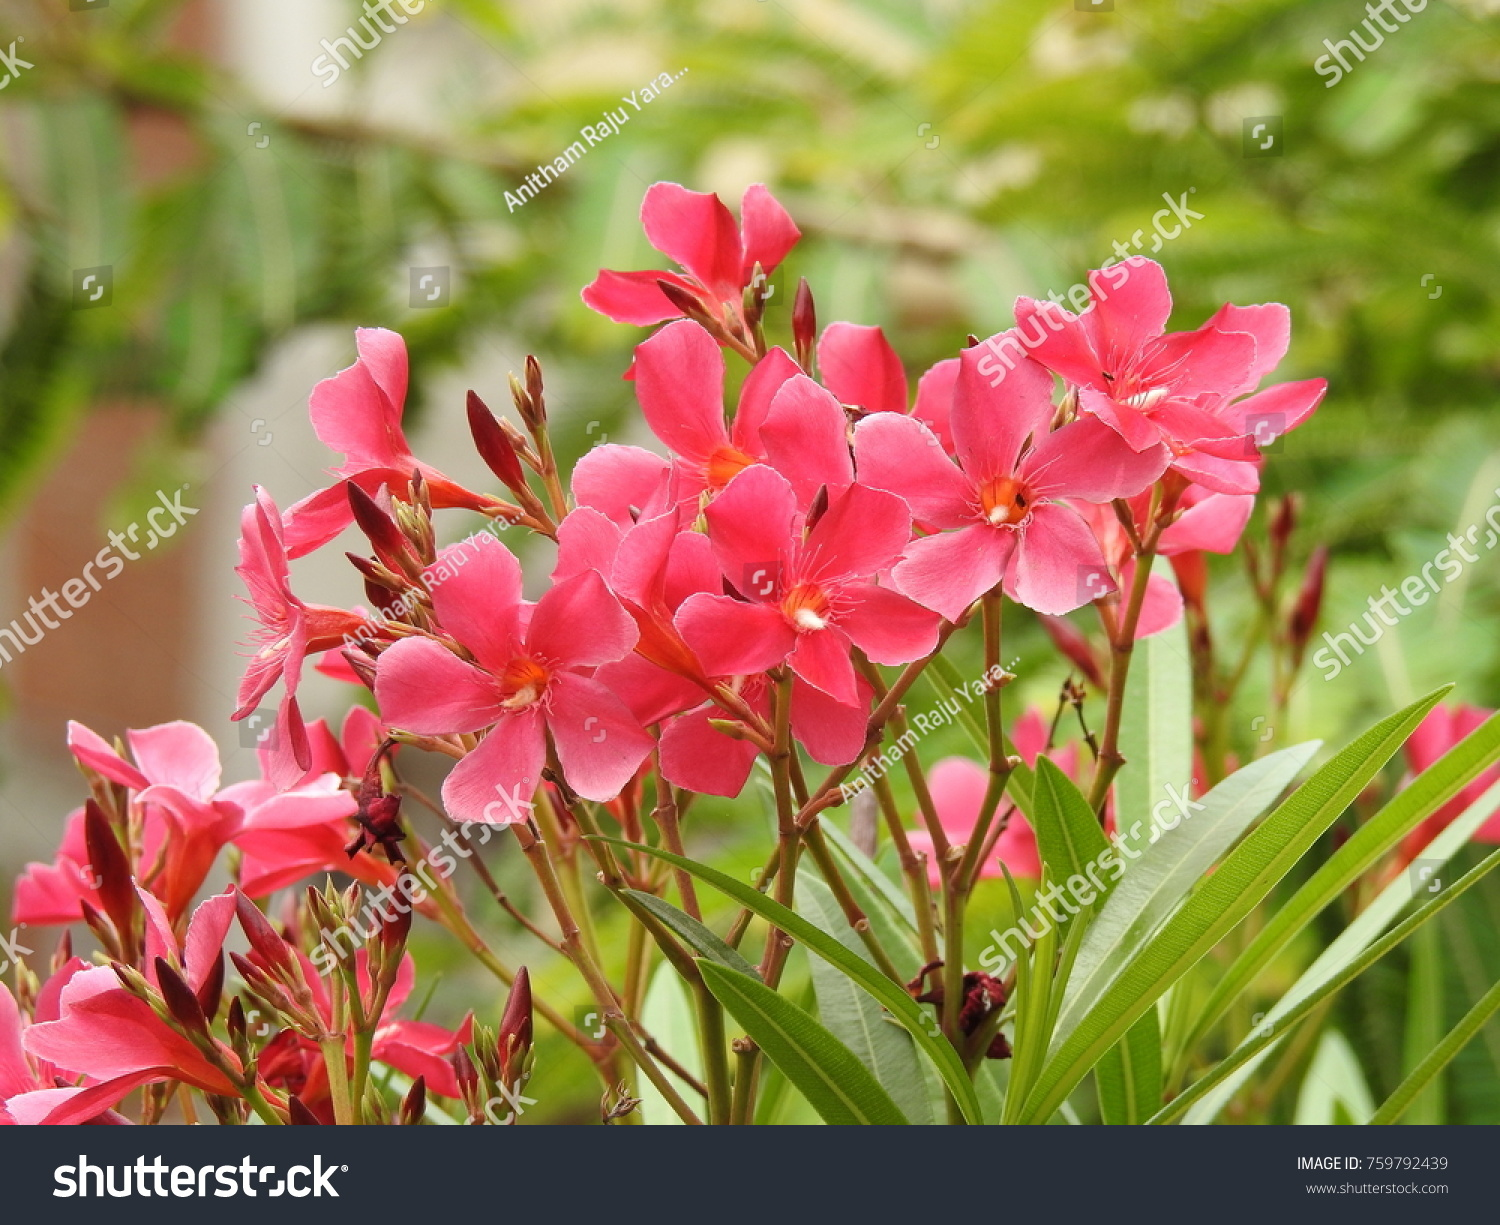 Nerium oleander la adelfa pink color stock photo edit now nerium oleander la adelfa pink color flowers it is a shrub or small tree mightylinksfo